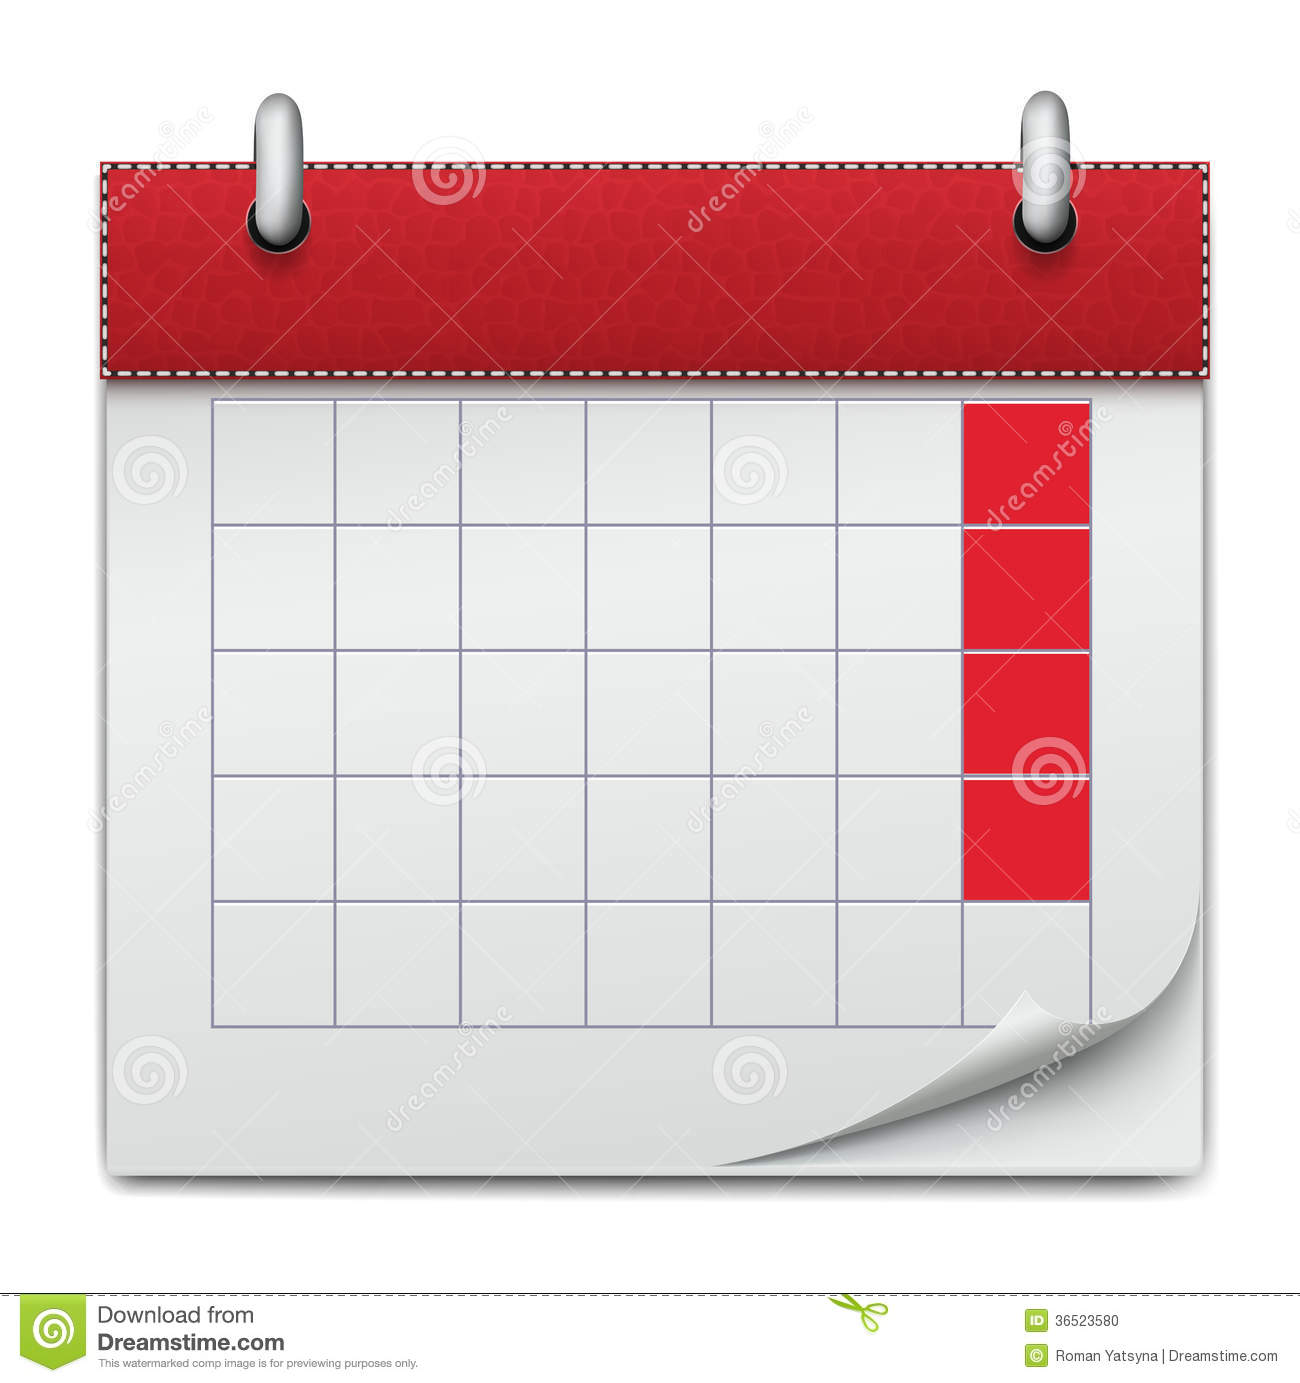 Calendar Illustration Yahoo : Calendar icon notebook business of planning conce stock